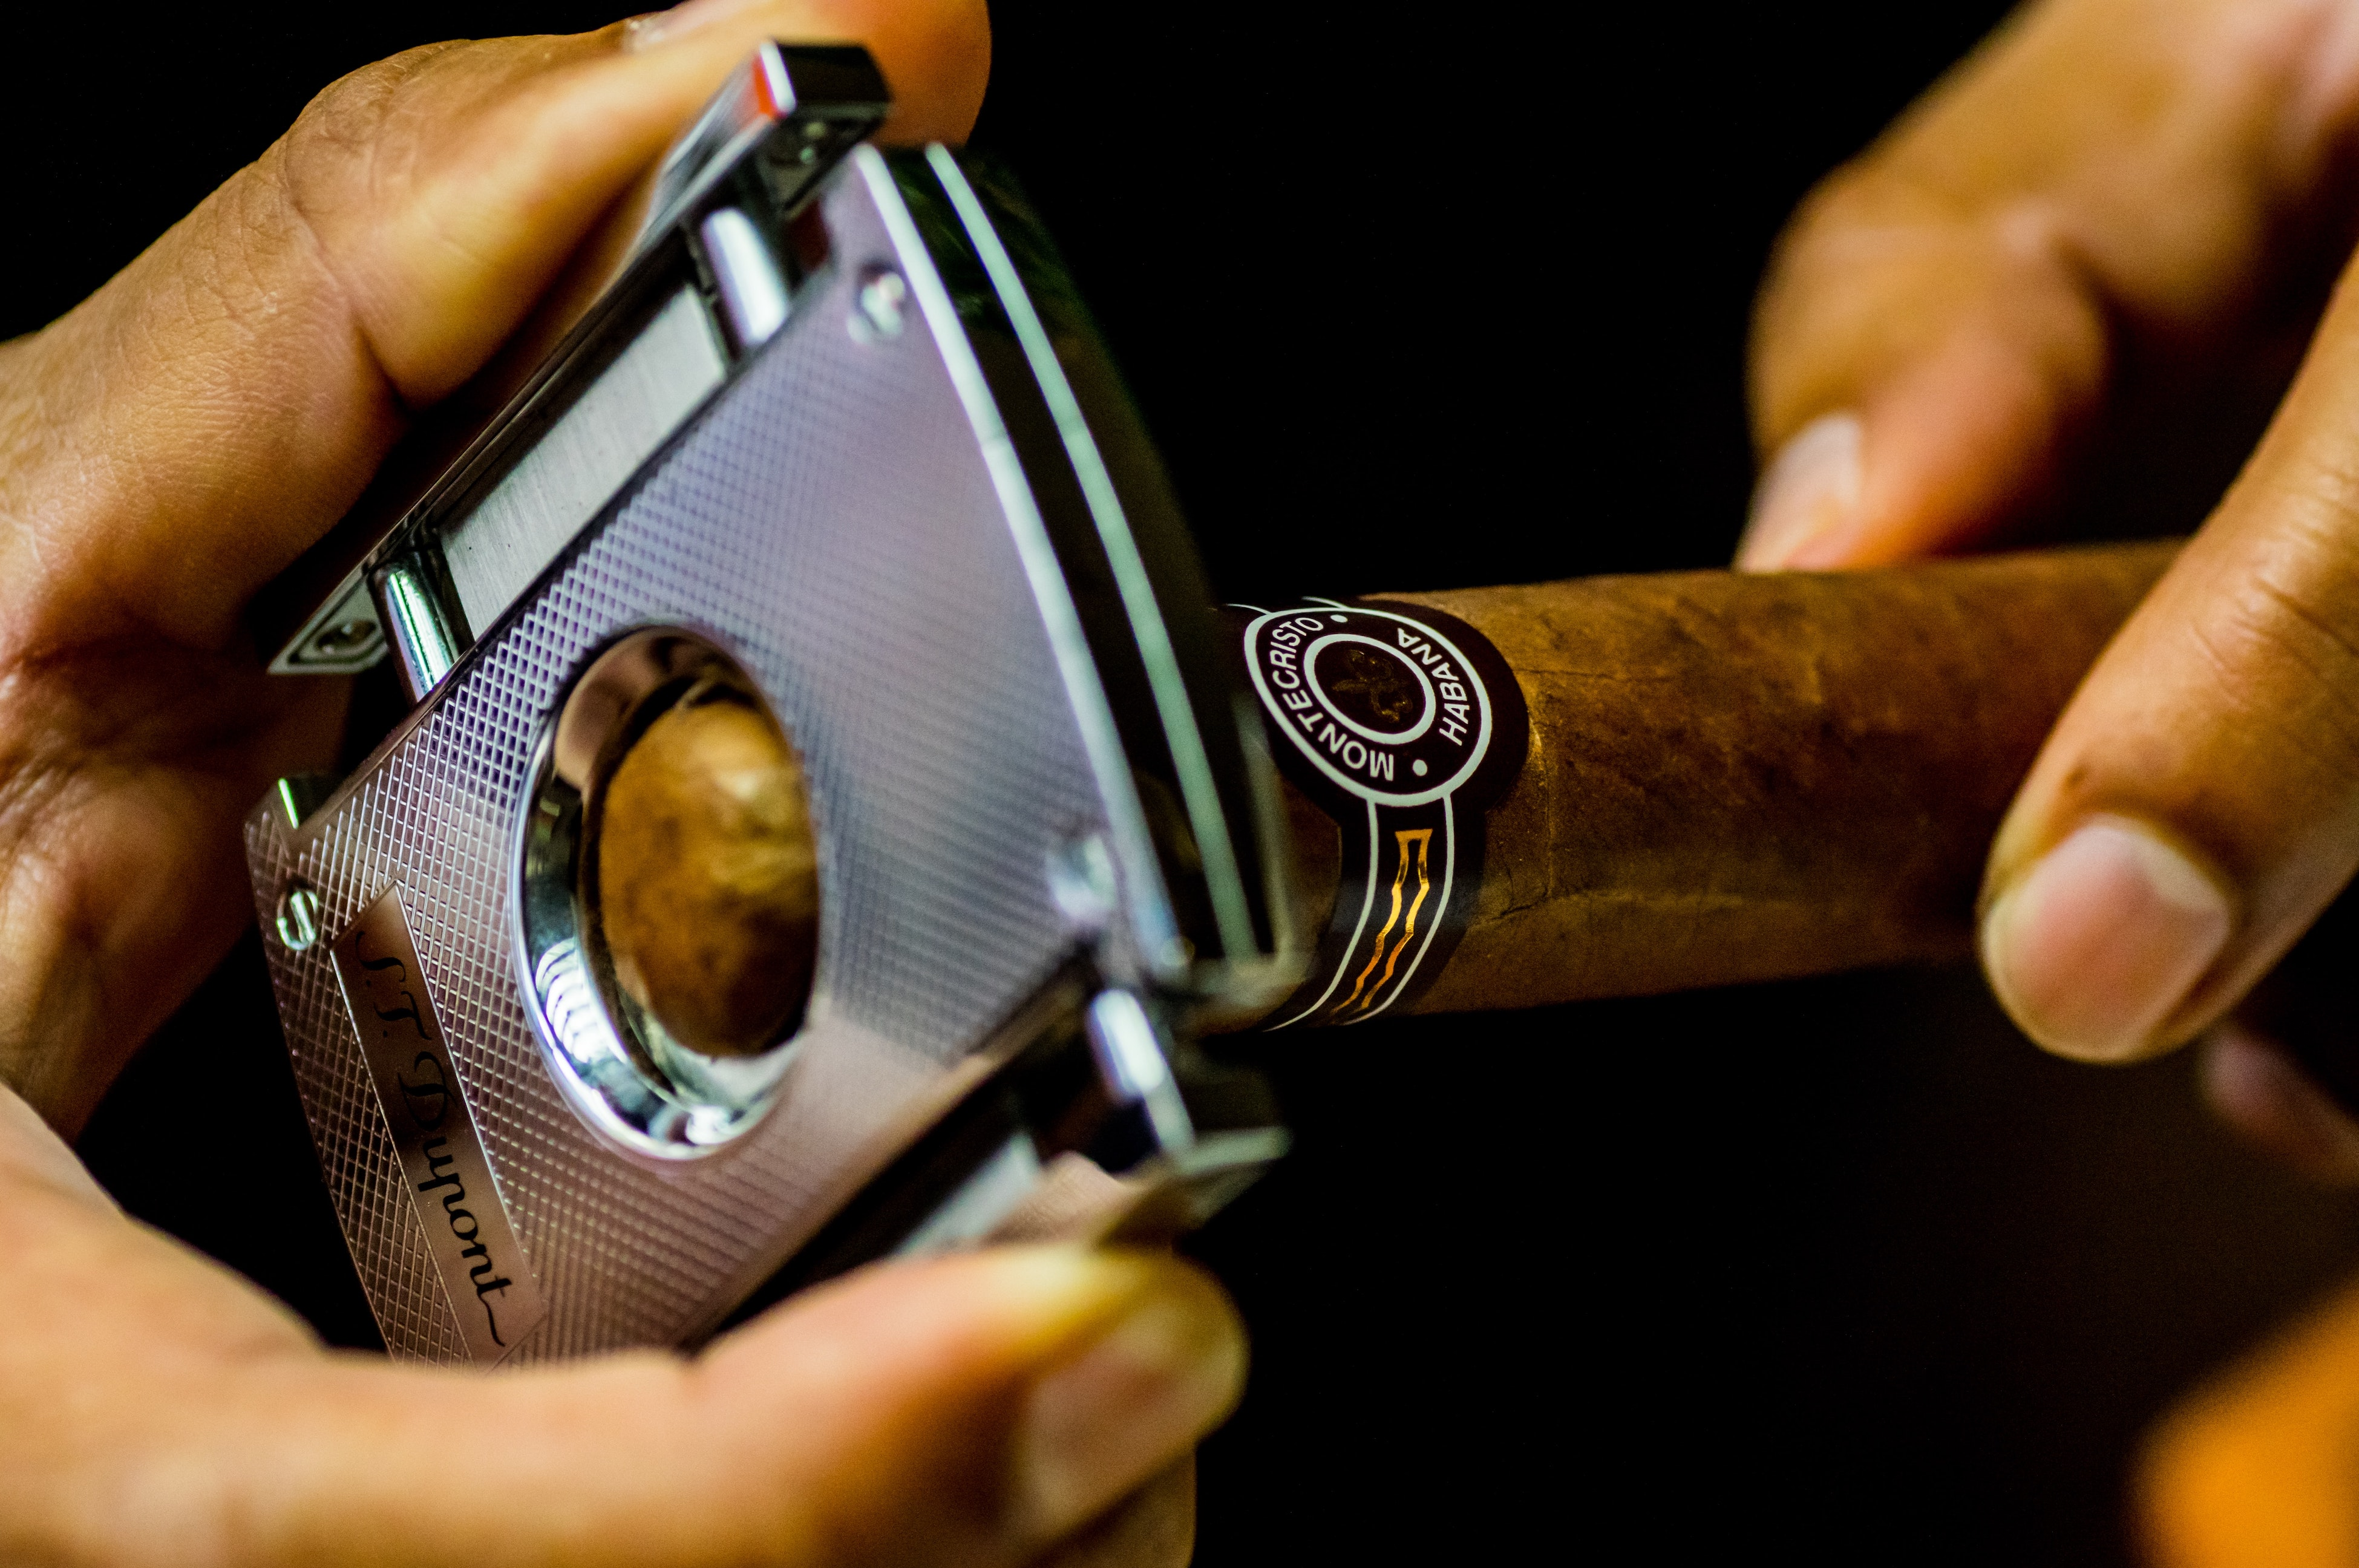 A cigar being clipped